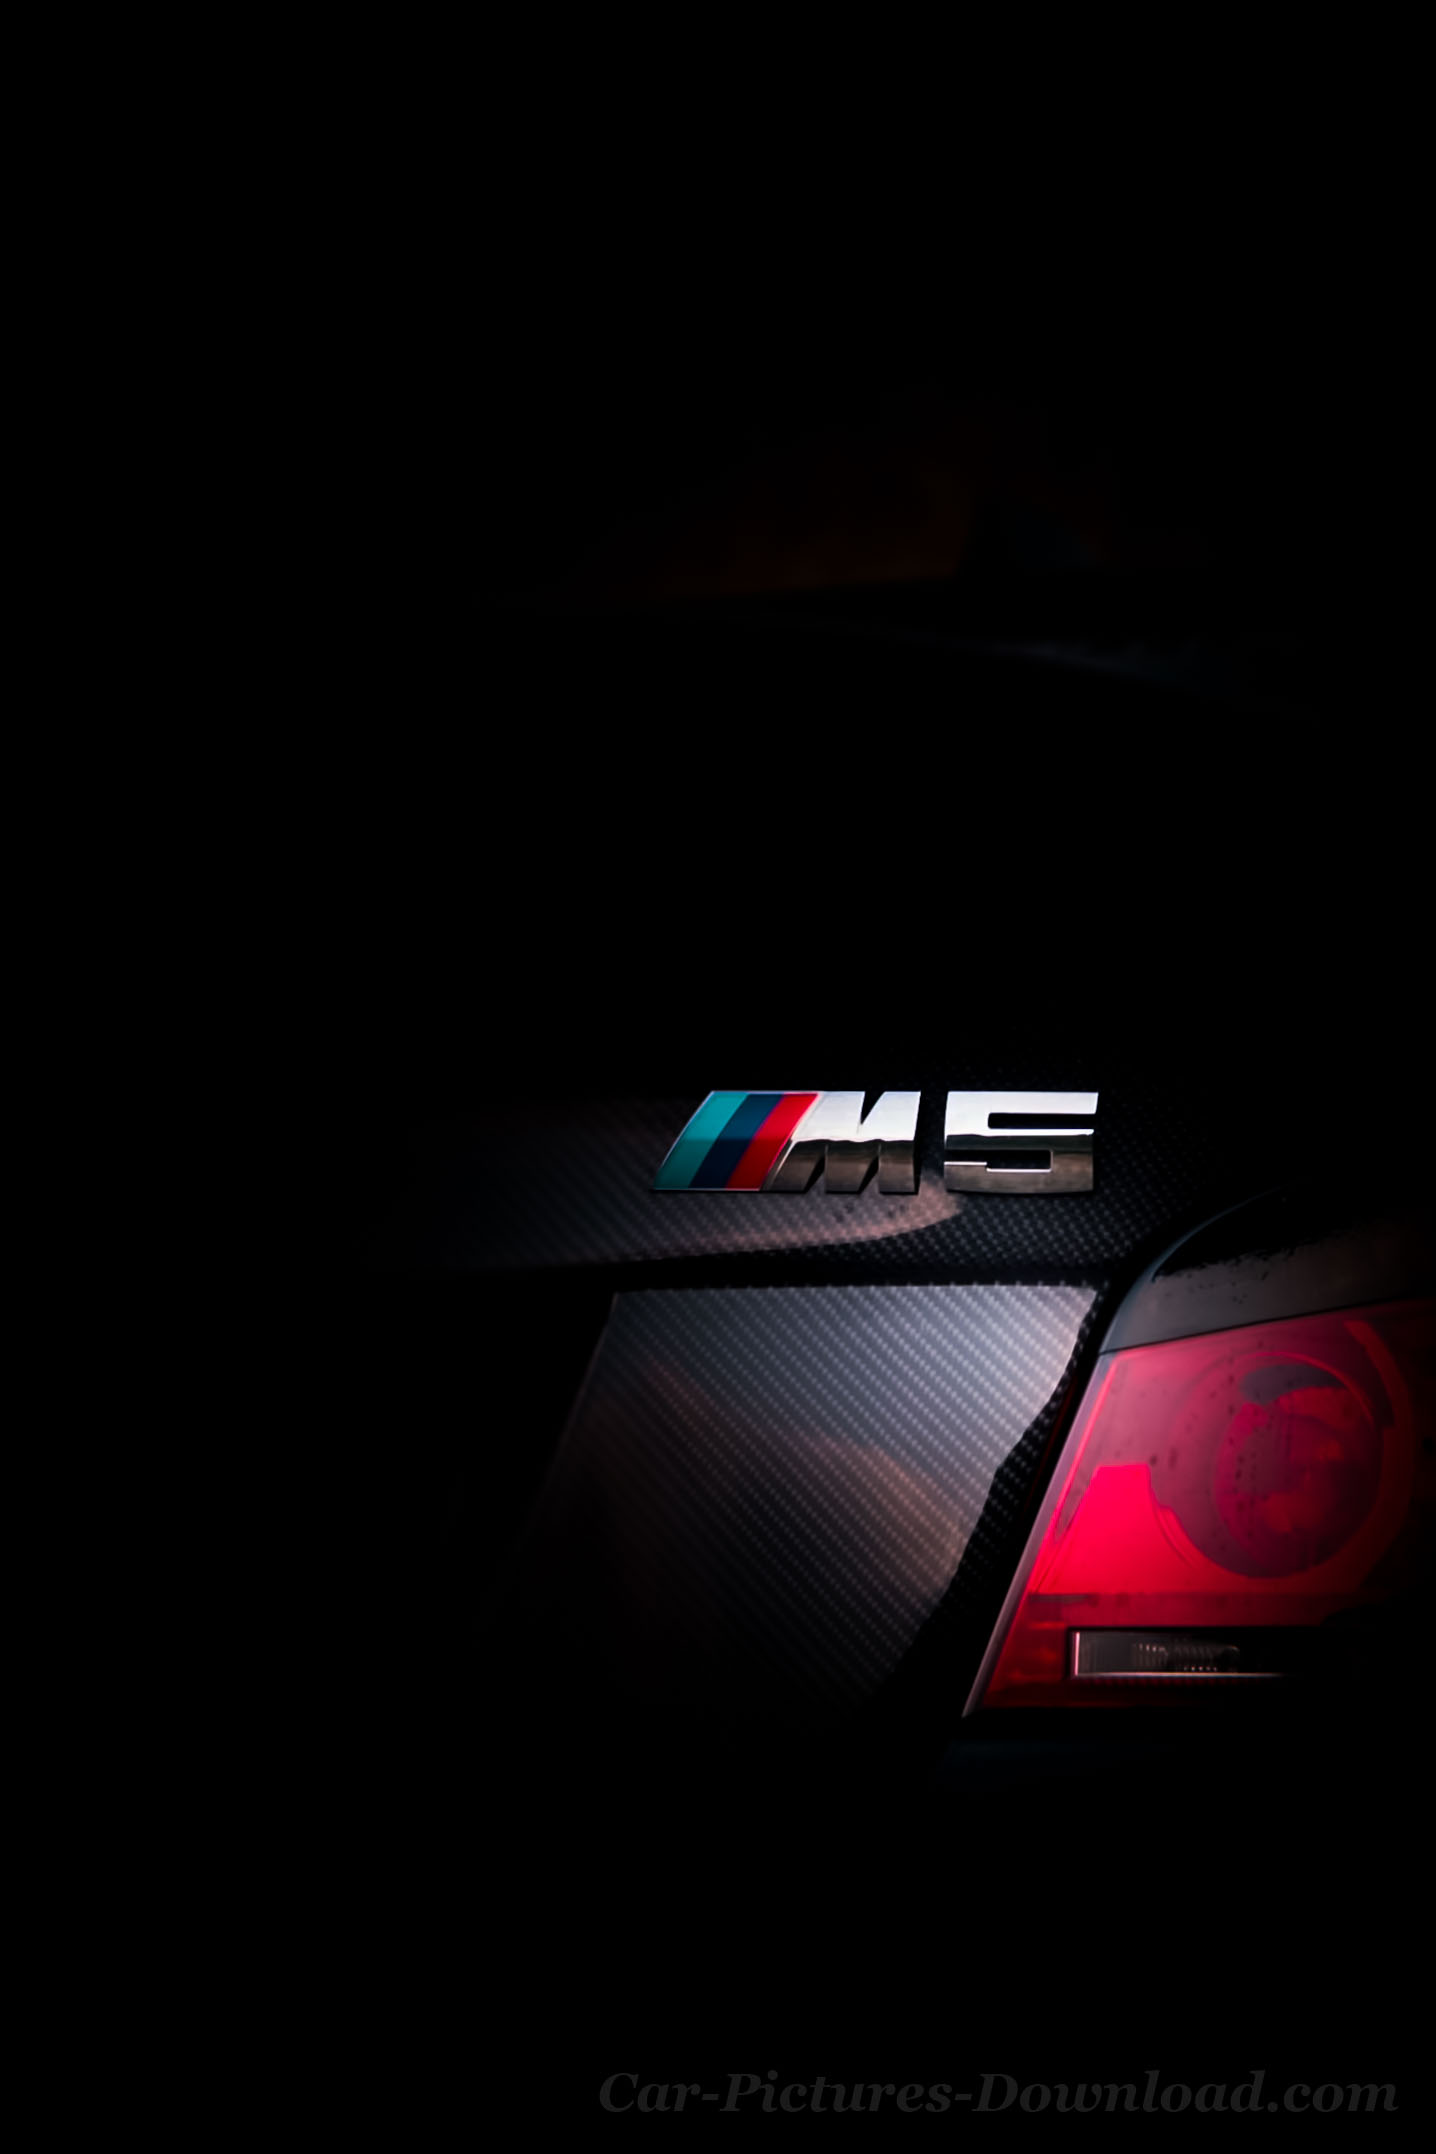 M5 Bmw Logo Wallpaper Hd Supercar 1436x2154 Download Hd Wallpaper Wallpapertip